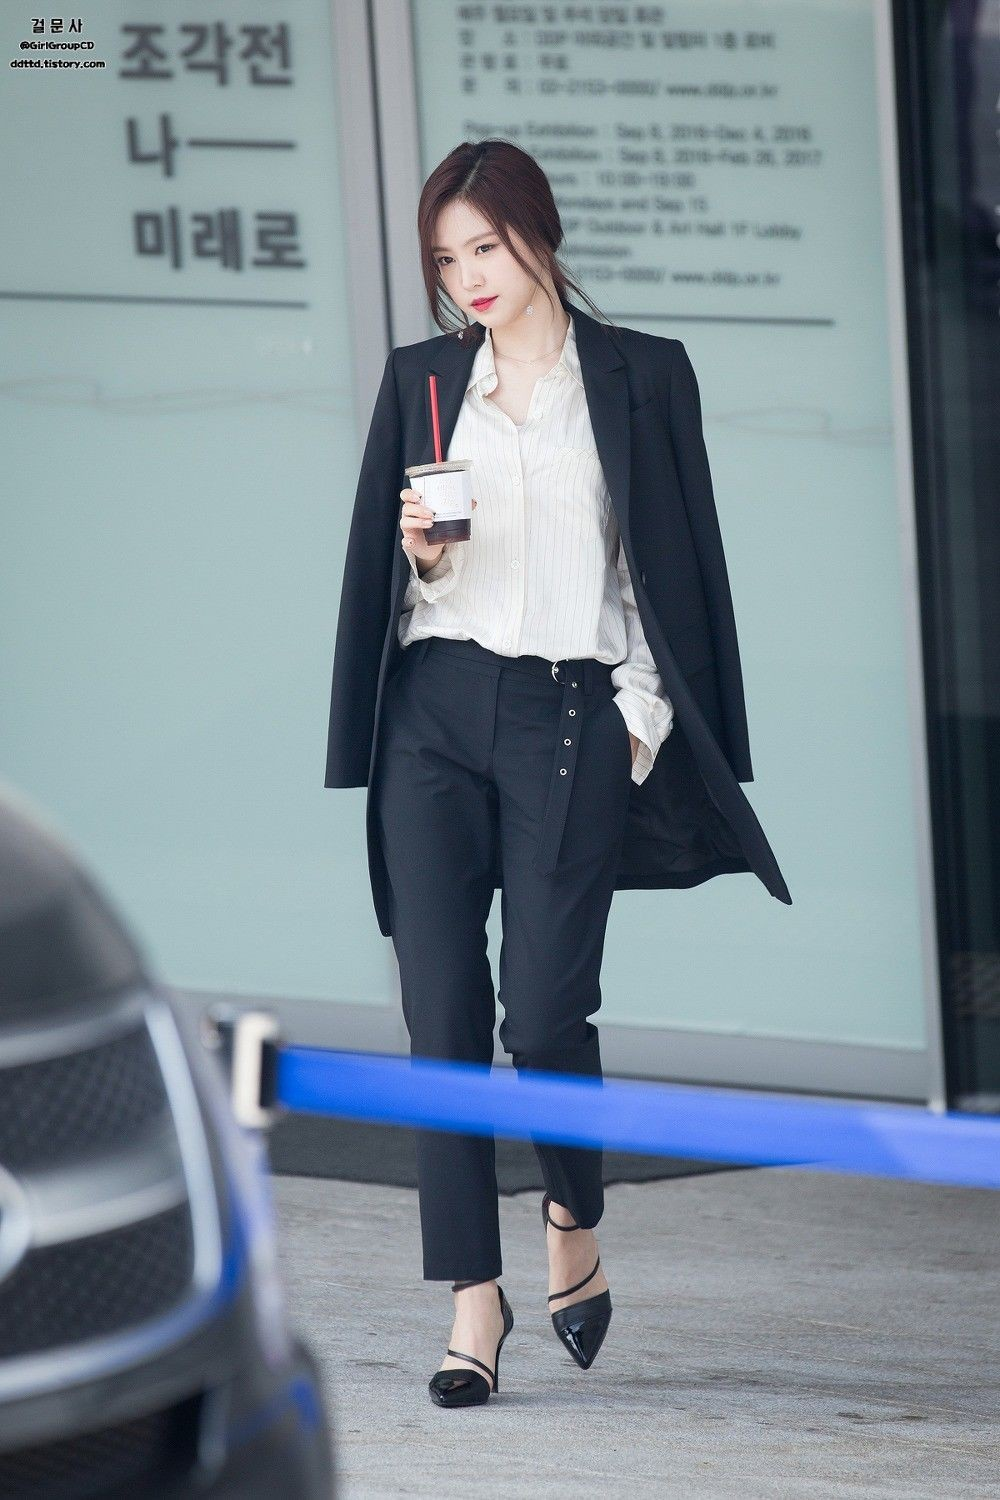 10 Gaya Office Look Modis ala Idol KPop, Stylish Saat Tampil Formal